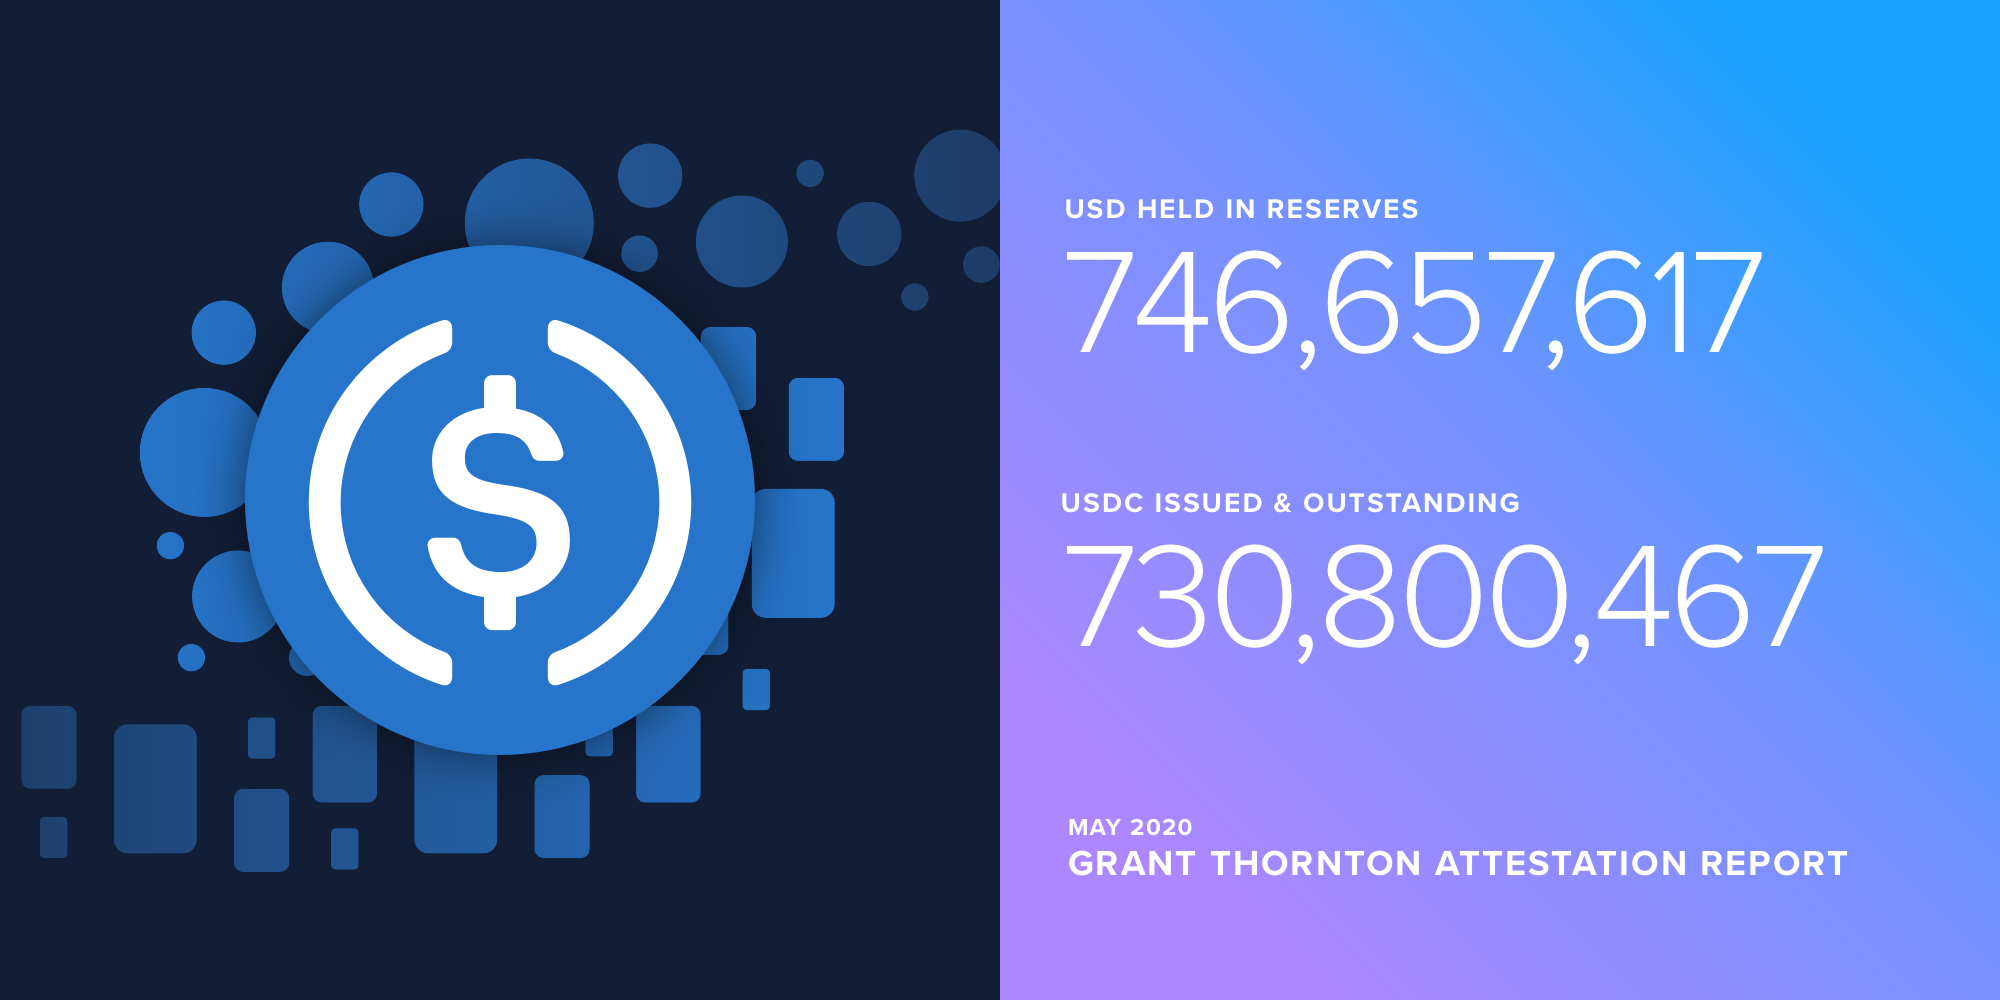 USDC Reserve Attestation Report from Grant Thornton LLP — May 2020